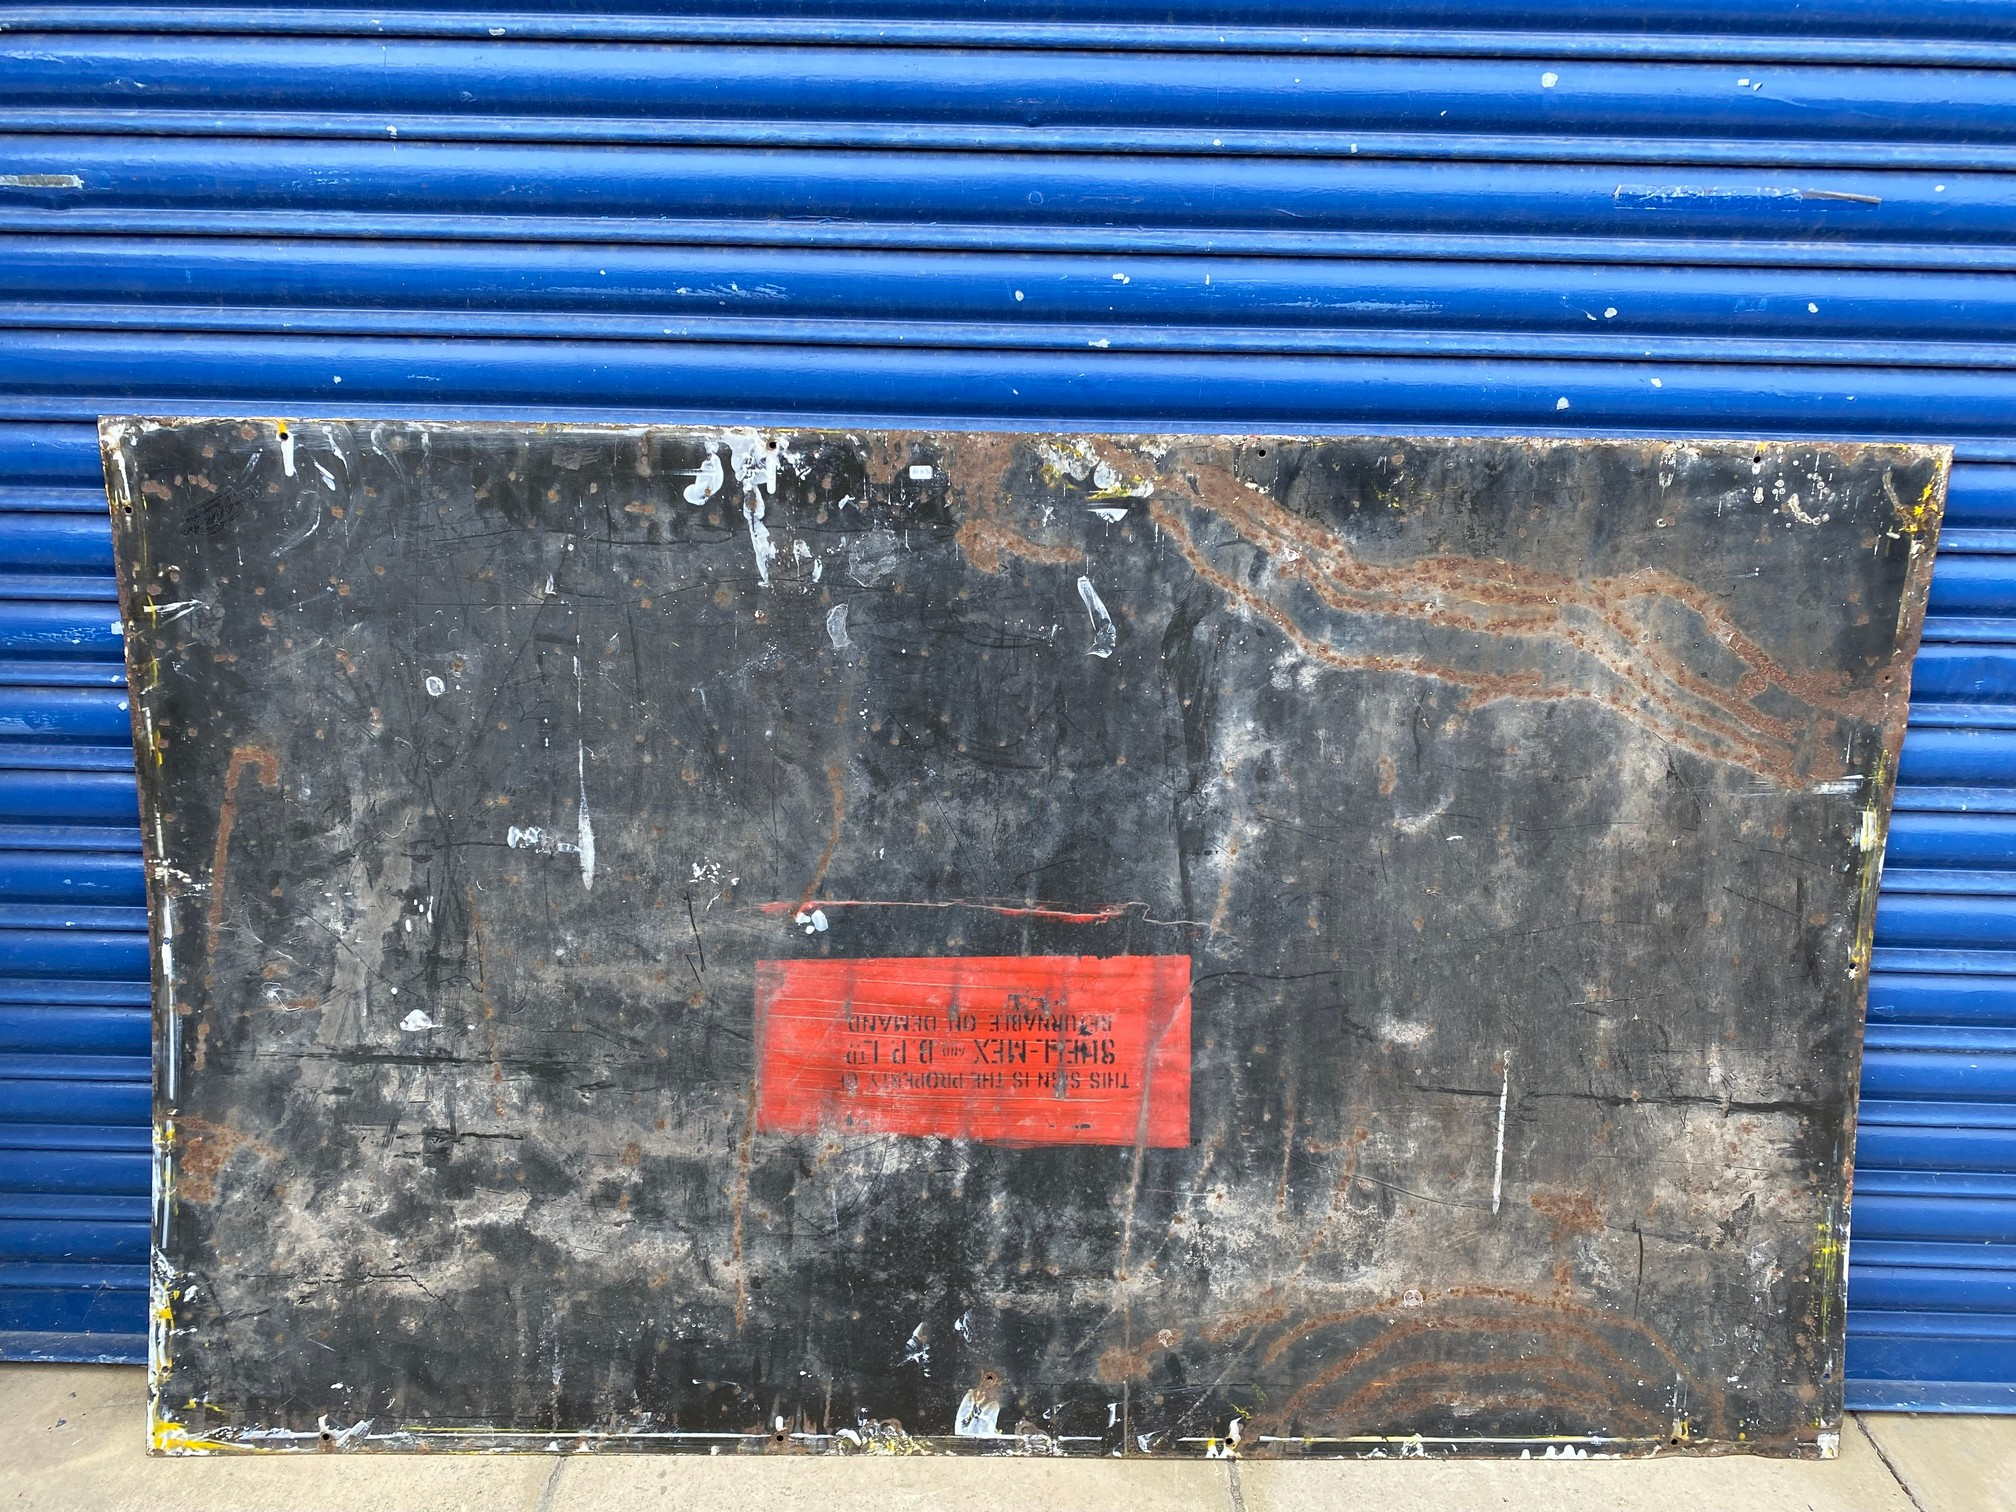 A rare Shell 'robert/stick man' Tecalemit Official Car Valeting Station rectangular enamel sign in - Image 6 of 7